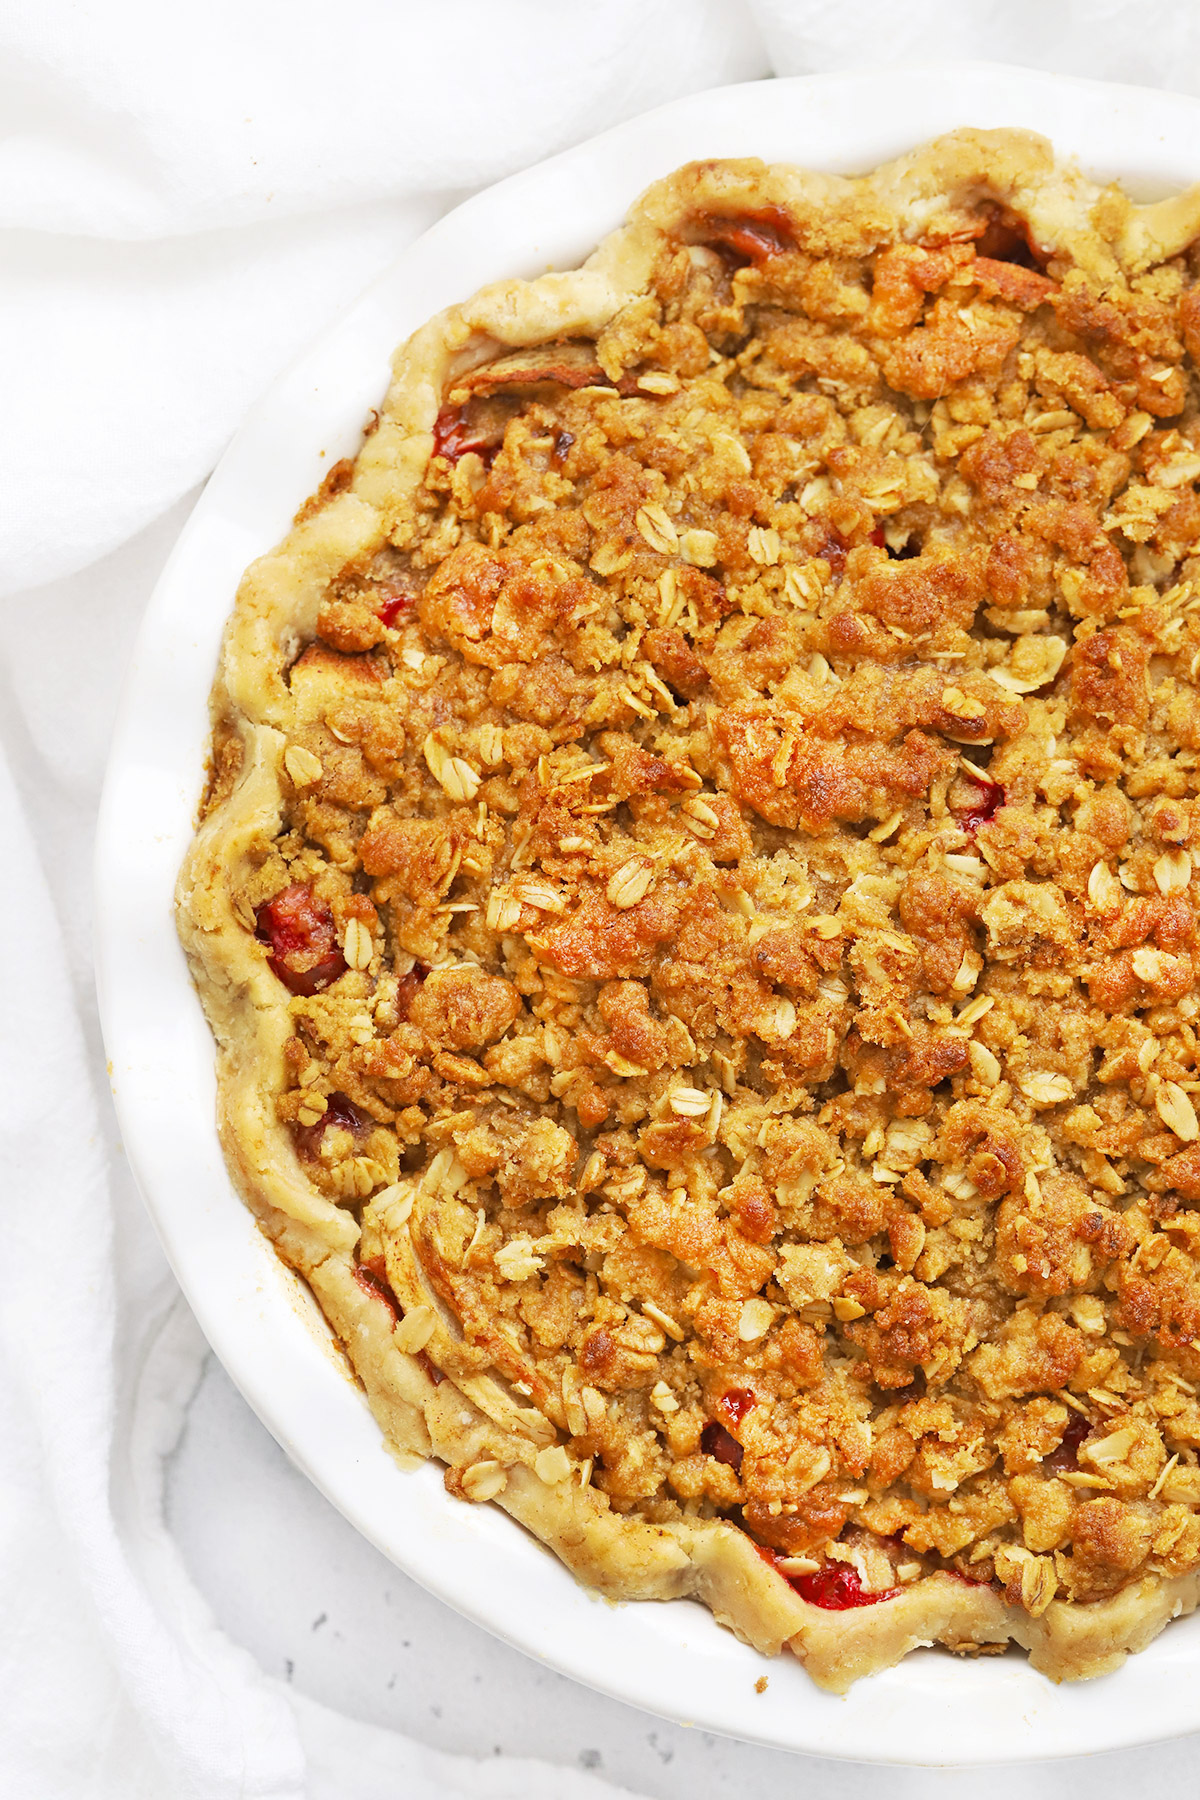 Close up view of an Apple Cranberry Crumble Pie on a white background